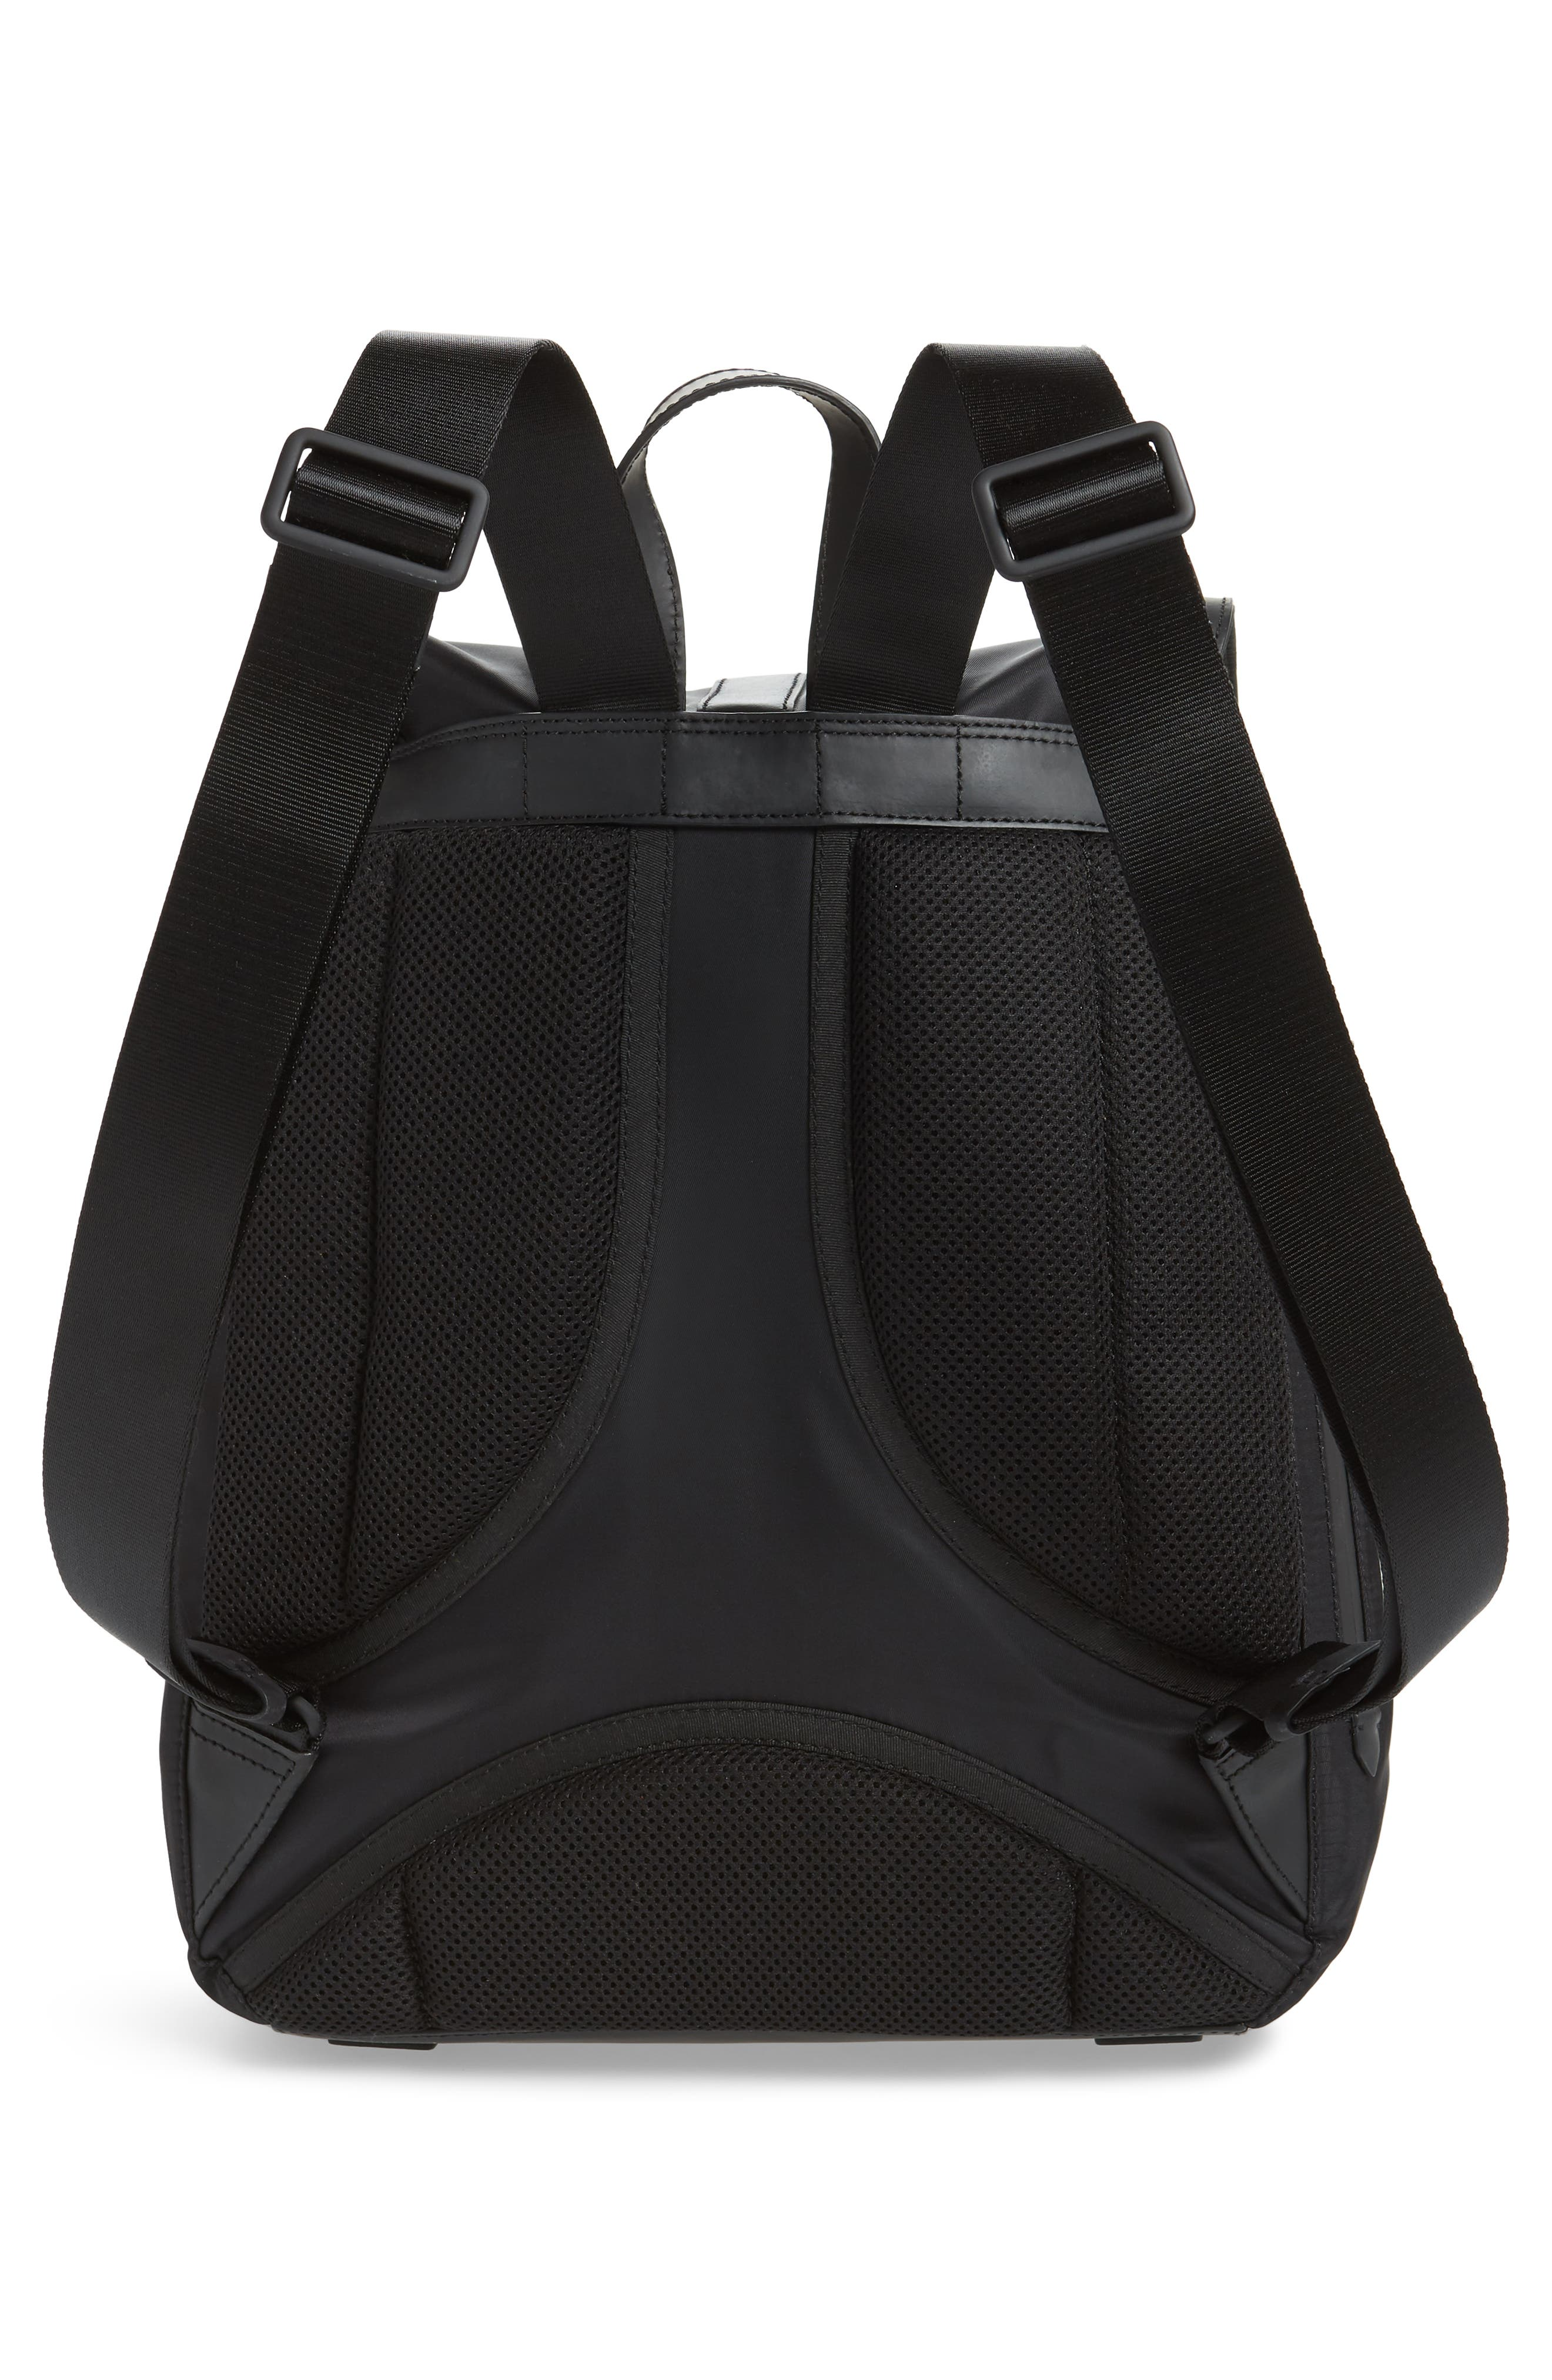 COLE HAAN, ZeroGrand Backpack, Alternate thumbnail 3, color, BLACK